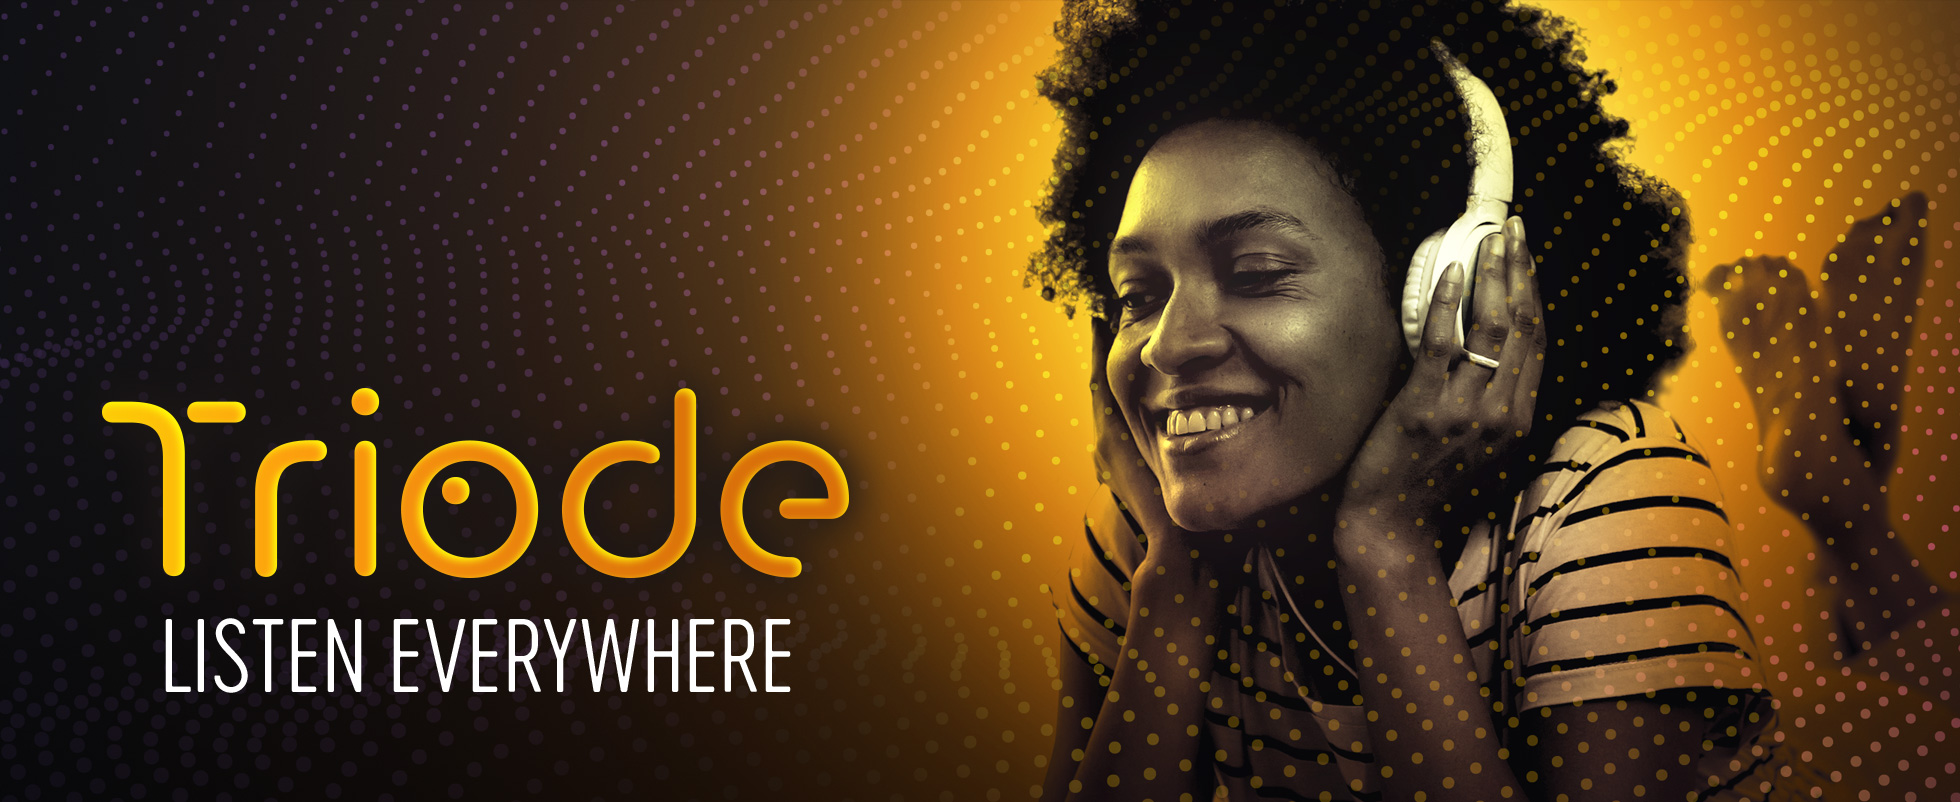 Triode promo banner with woman listening to music with headphones